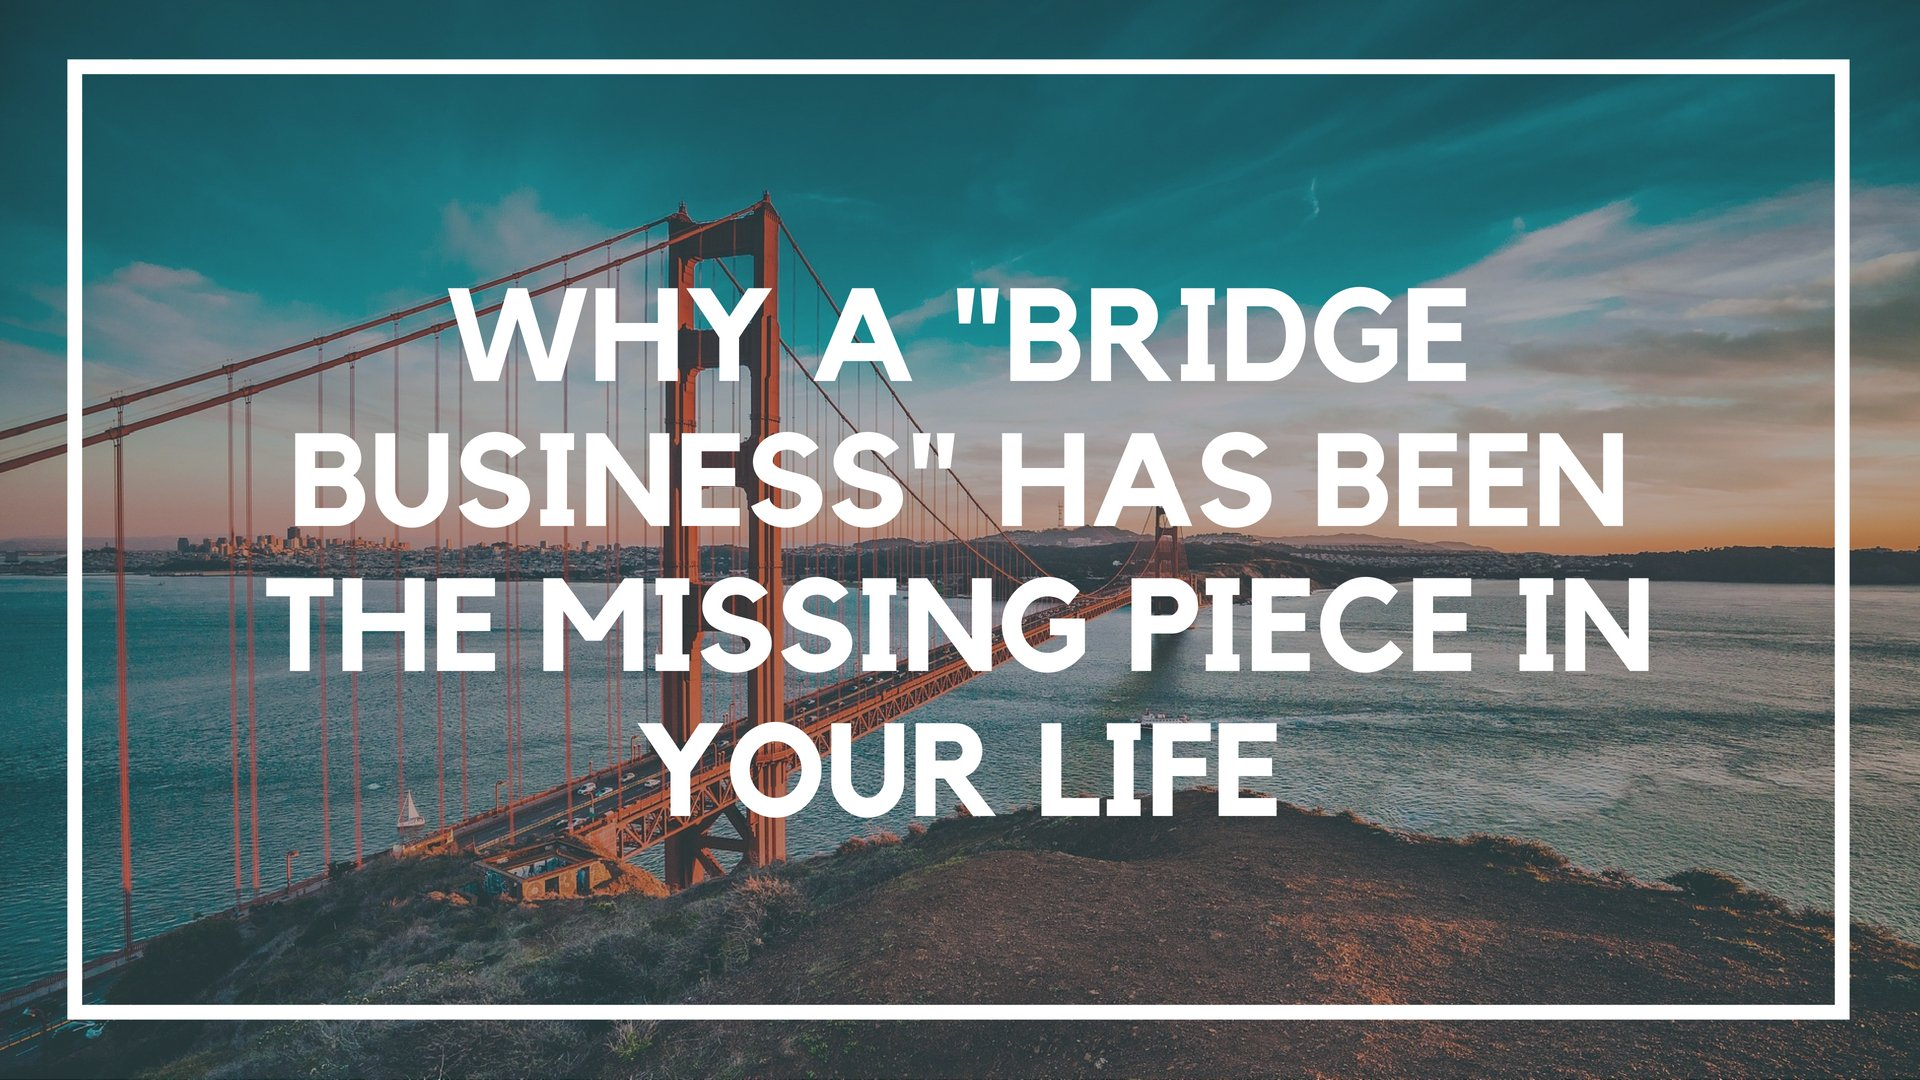 """Why A """"Bridge Business"""" Has Been the Missing Piece in Your Life"""